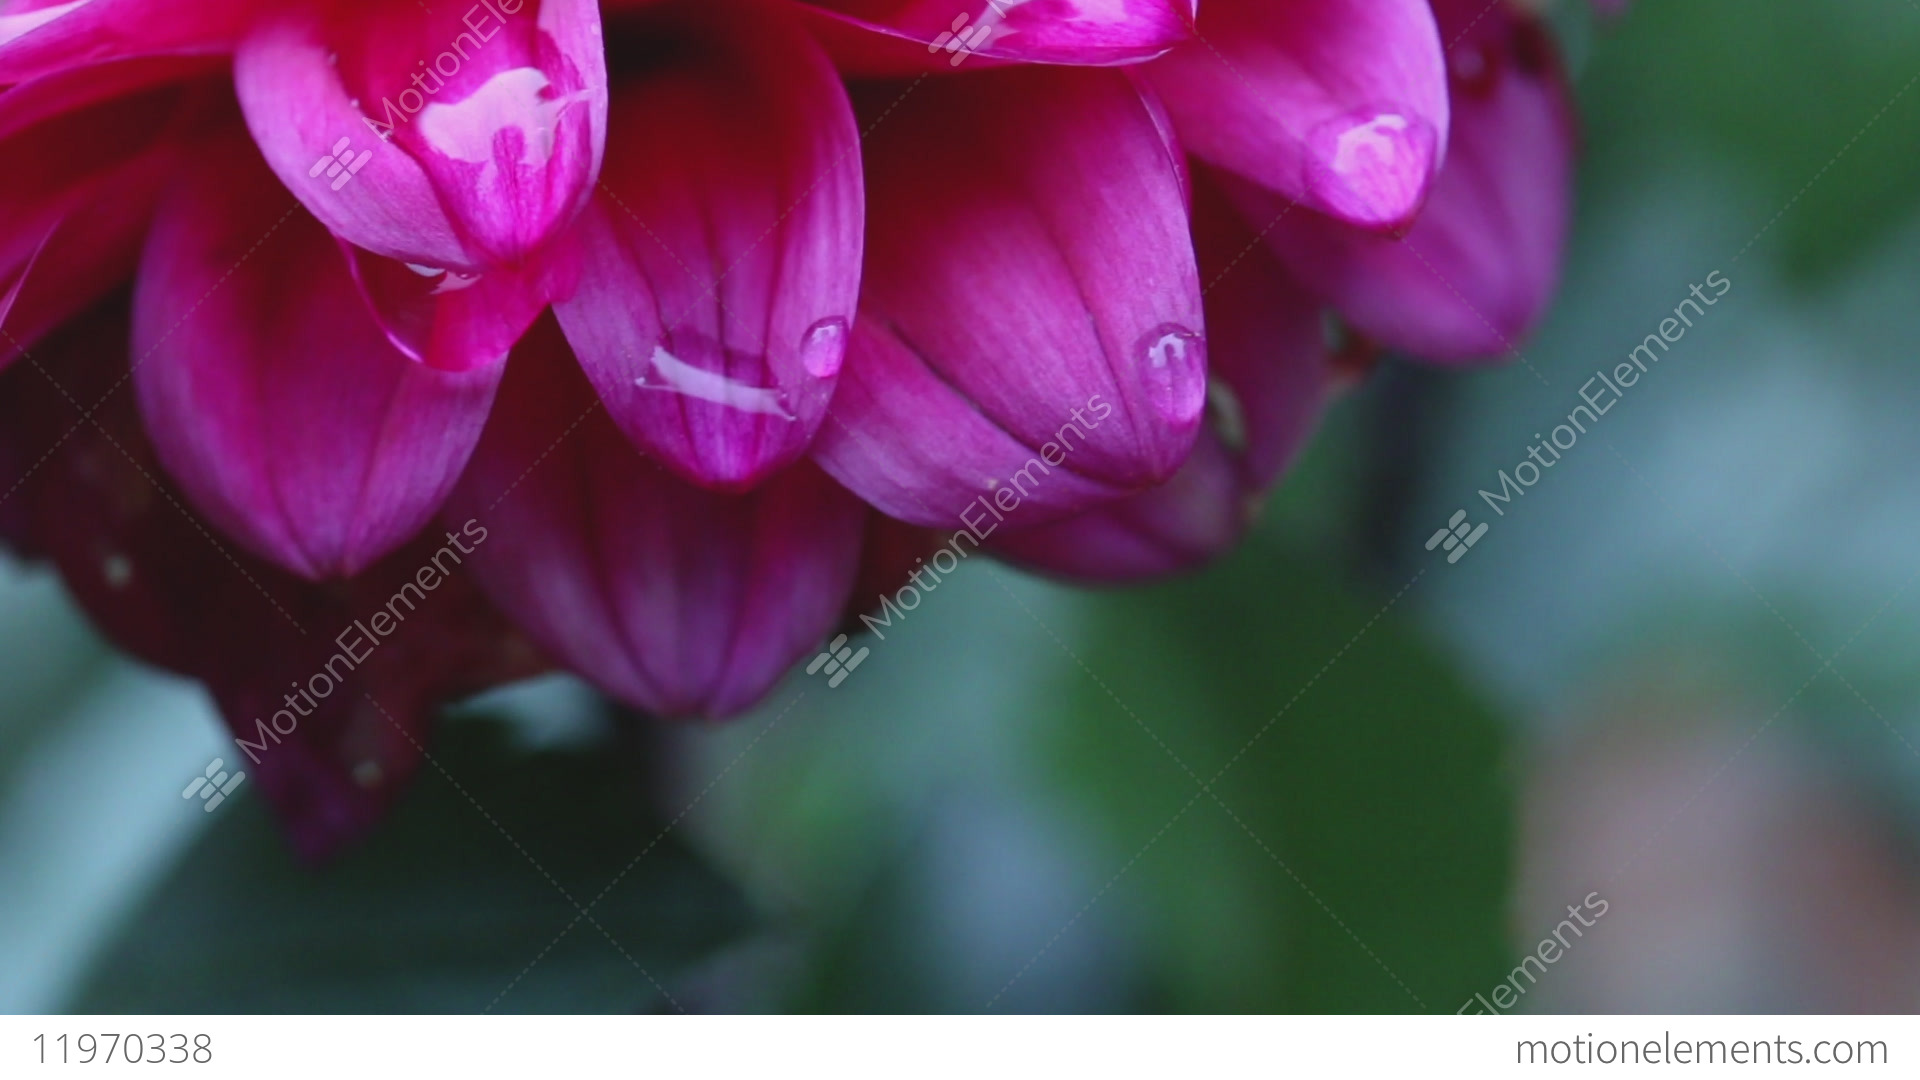 Extreme Close Up Shot Of A Pink Dahlia Flower In The Rain Raindrops